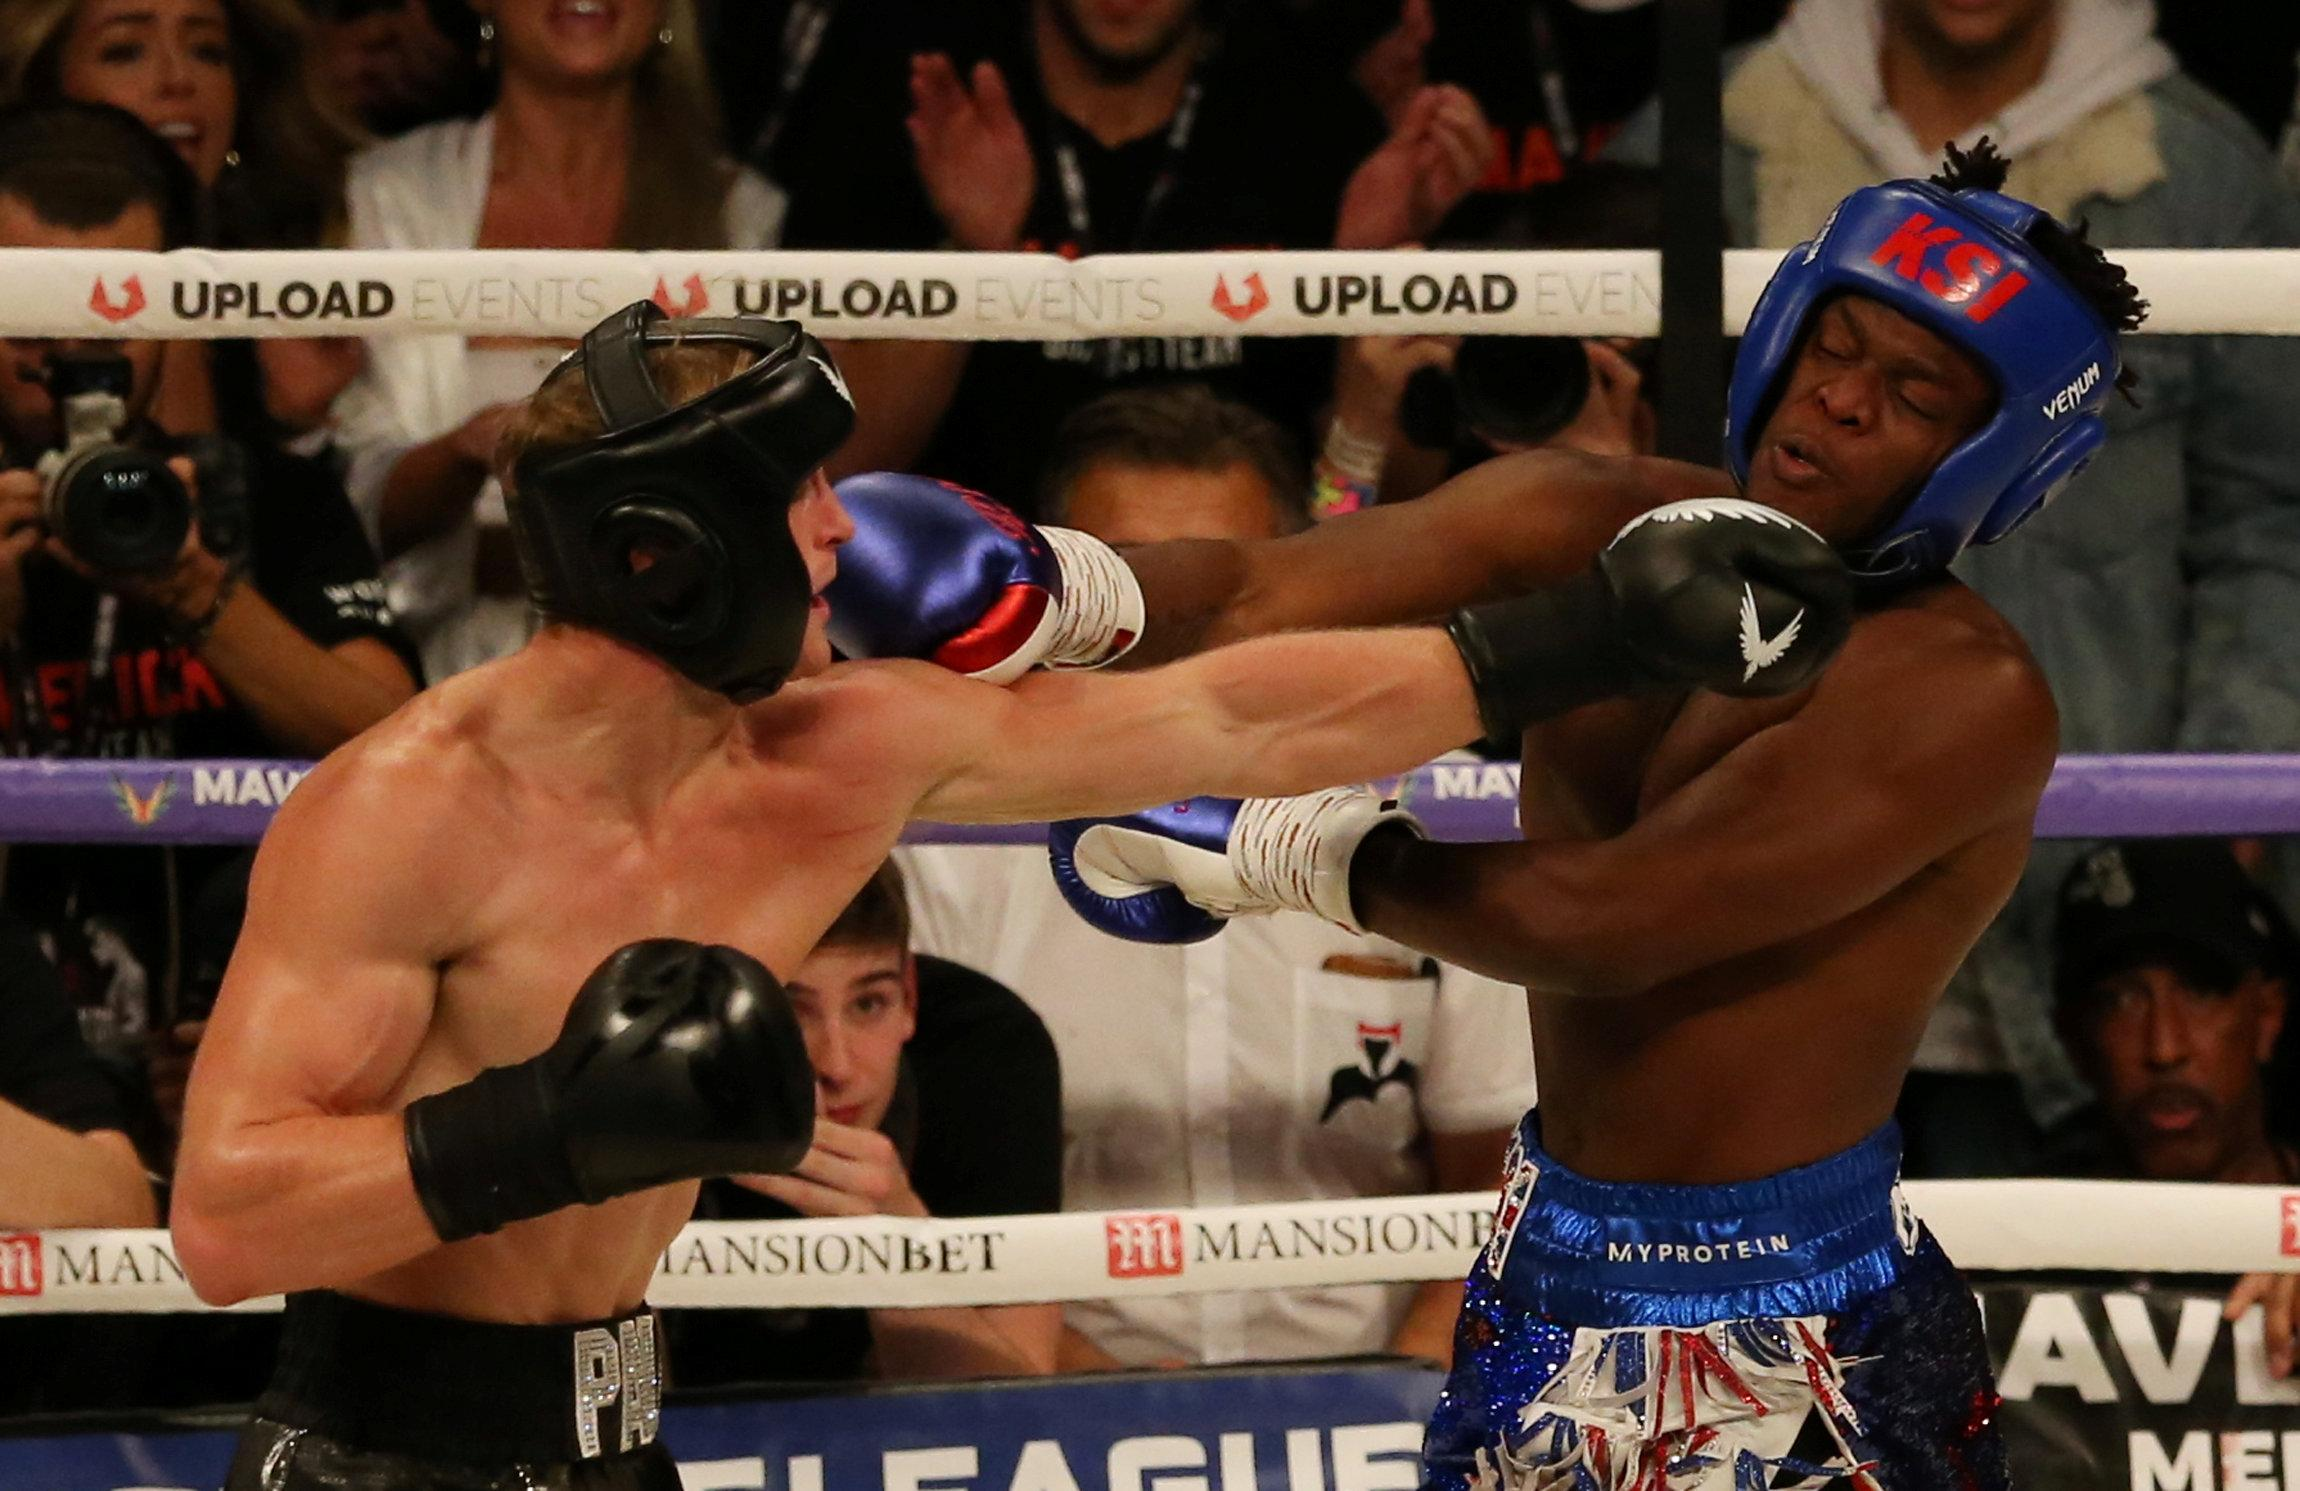 The PPV sold over 800,00 as the pair fought for six rounds